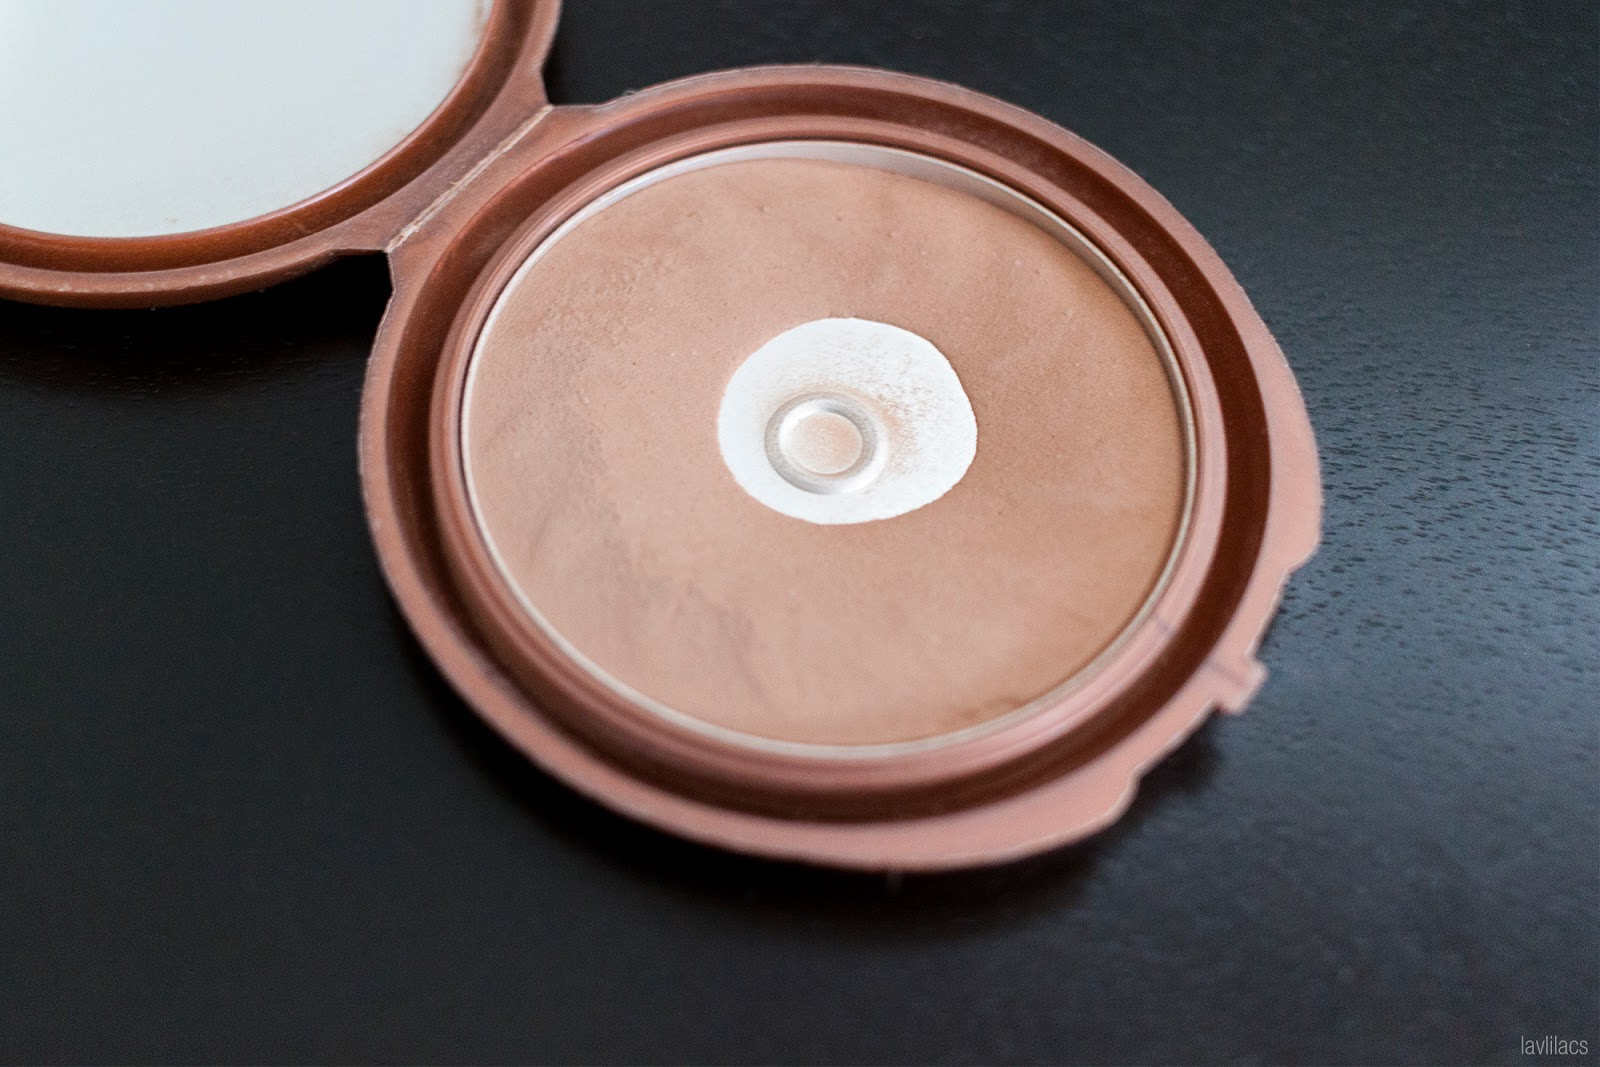 Project Make A Dent 2016 NYC Smooth Skin Bronzing Face Powder 720 Sunny - Before results